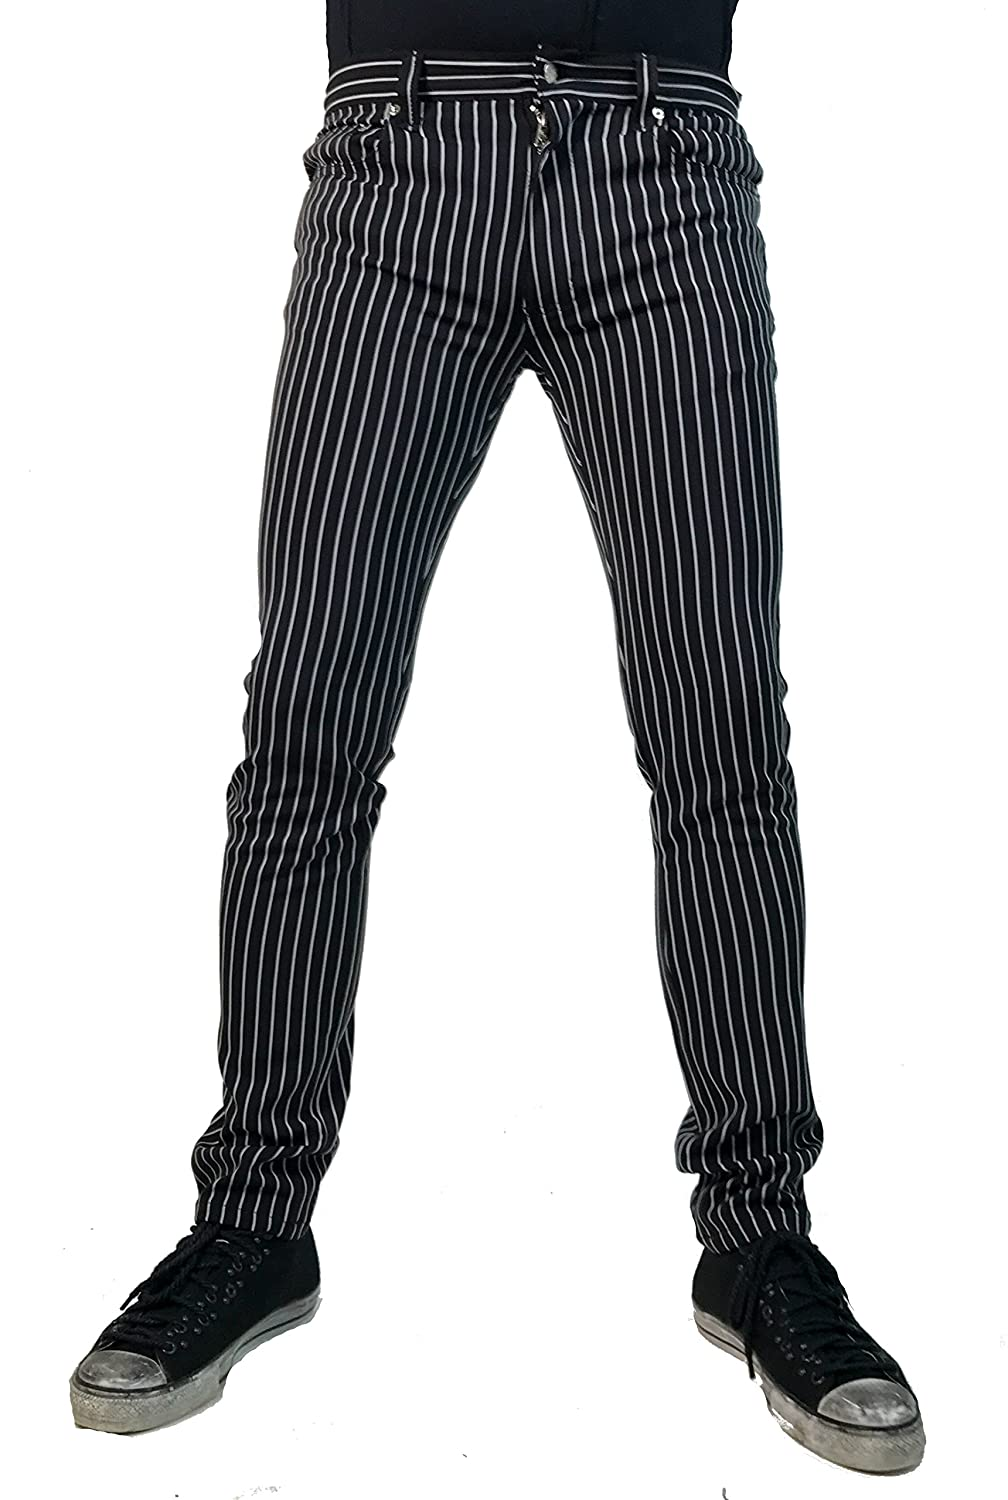 1950s Men's Costumes: Greaser, Elvis, Rockabilly, Prom Tripp Gothic Punk Rocker Rockabilly Wedding Skinny Black White Stripe Pants Trousers $59.99 AT vintagedancer.com